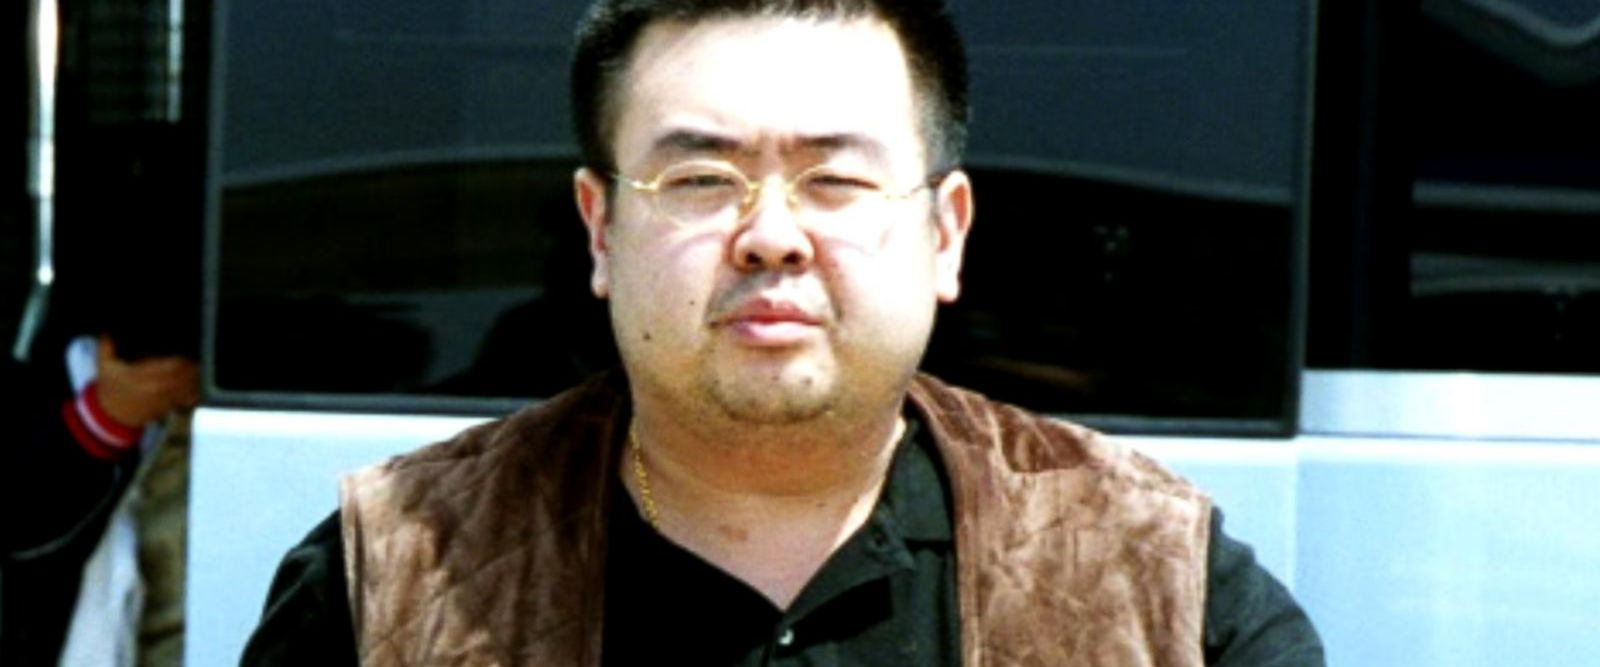 VIDEO: Fourth arrest announced in murder North Korean leader's brother